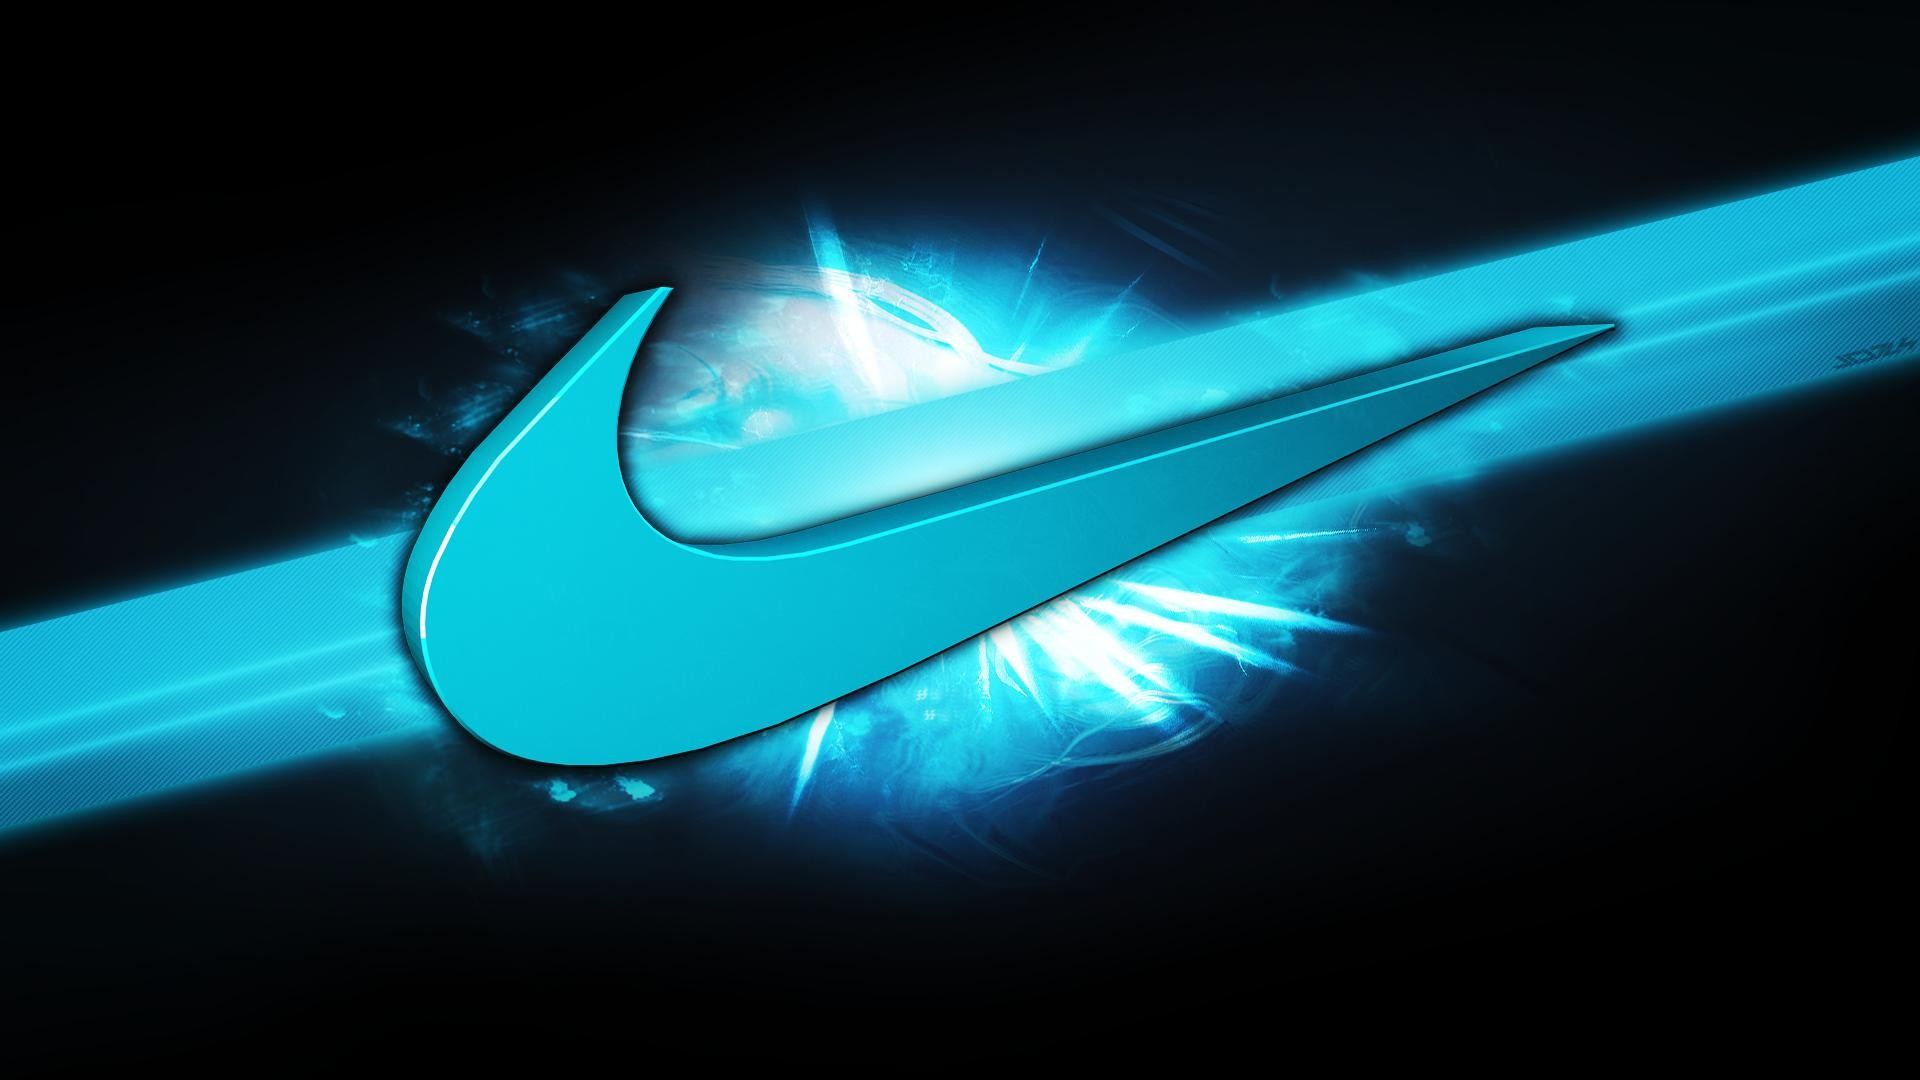 1920x1080 Free Nike Wallpaper Backgrounds - Wallpaper Cave